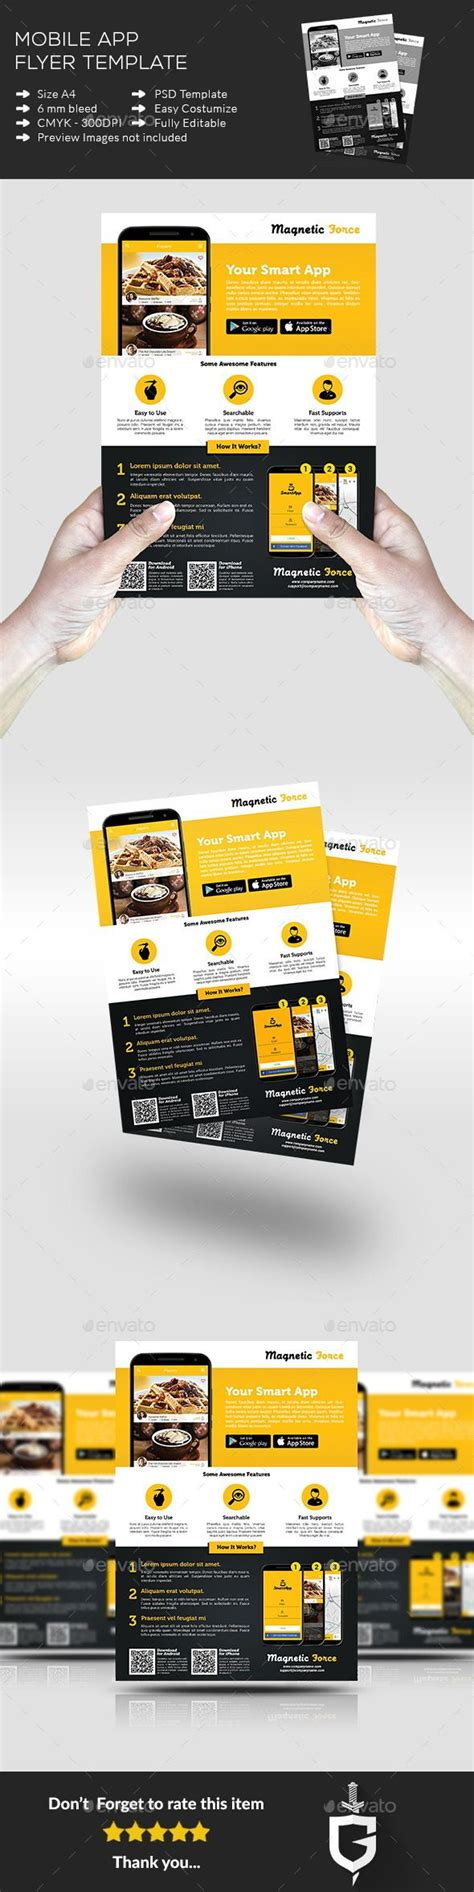 Mobile Flyer Template